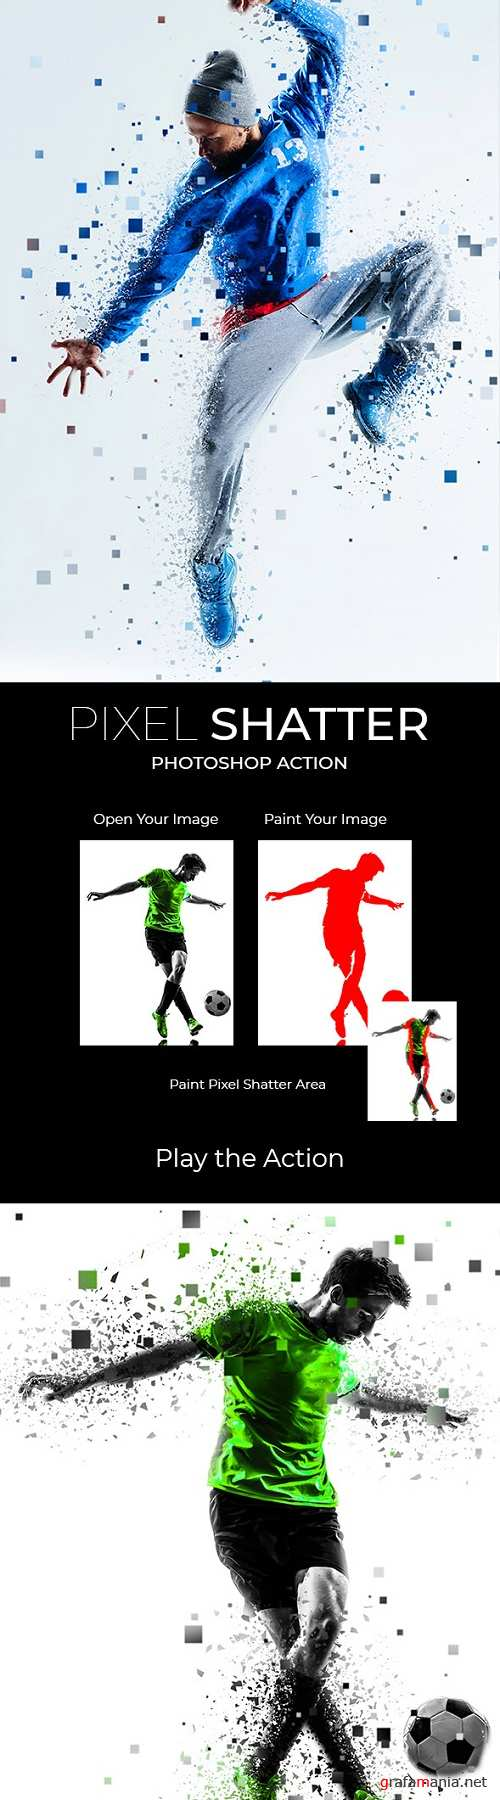 Pixel Shatter Photoshop Action 21883196